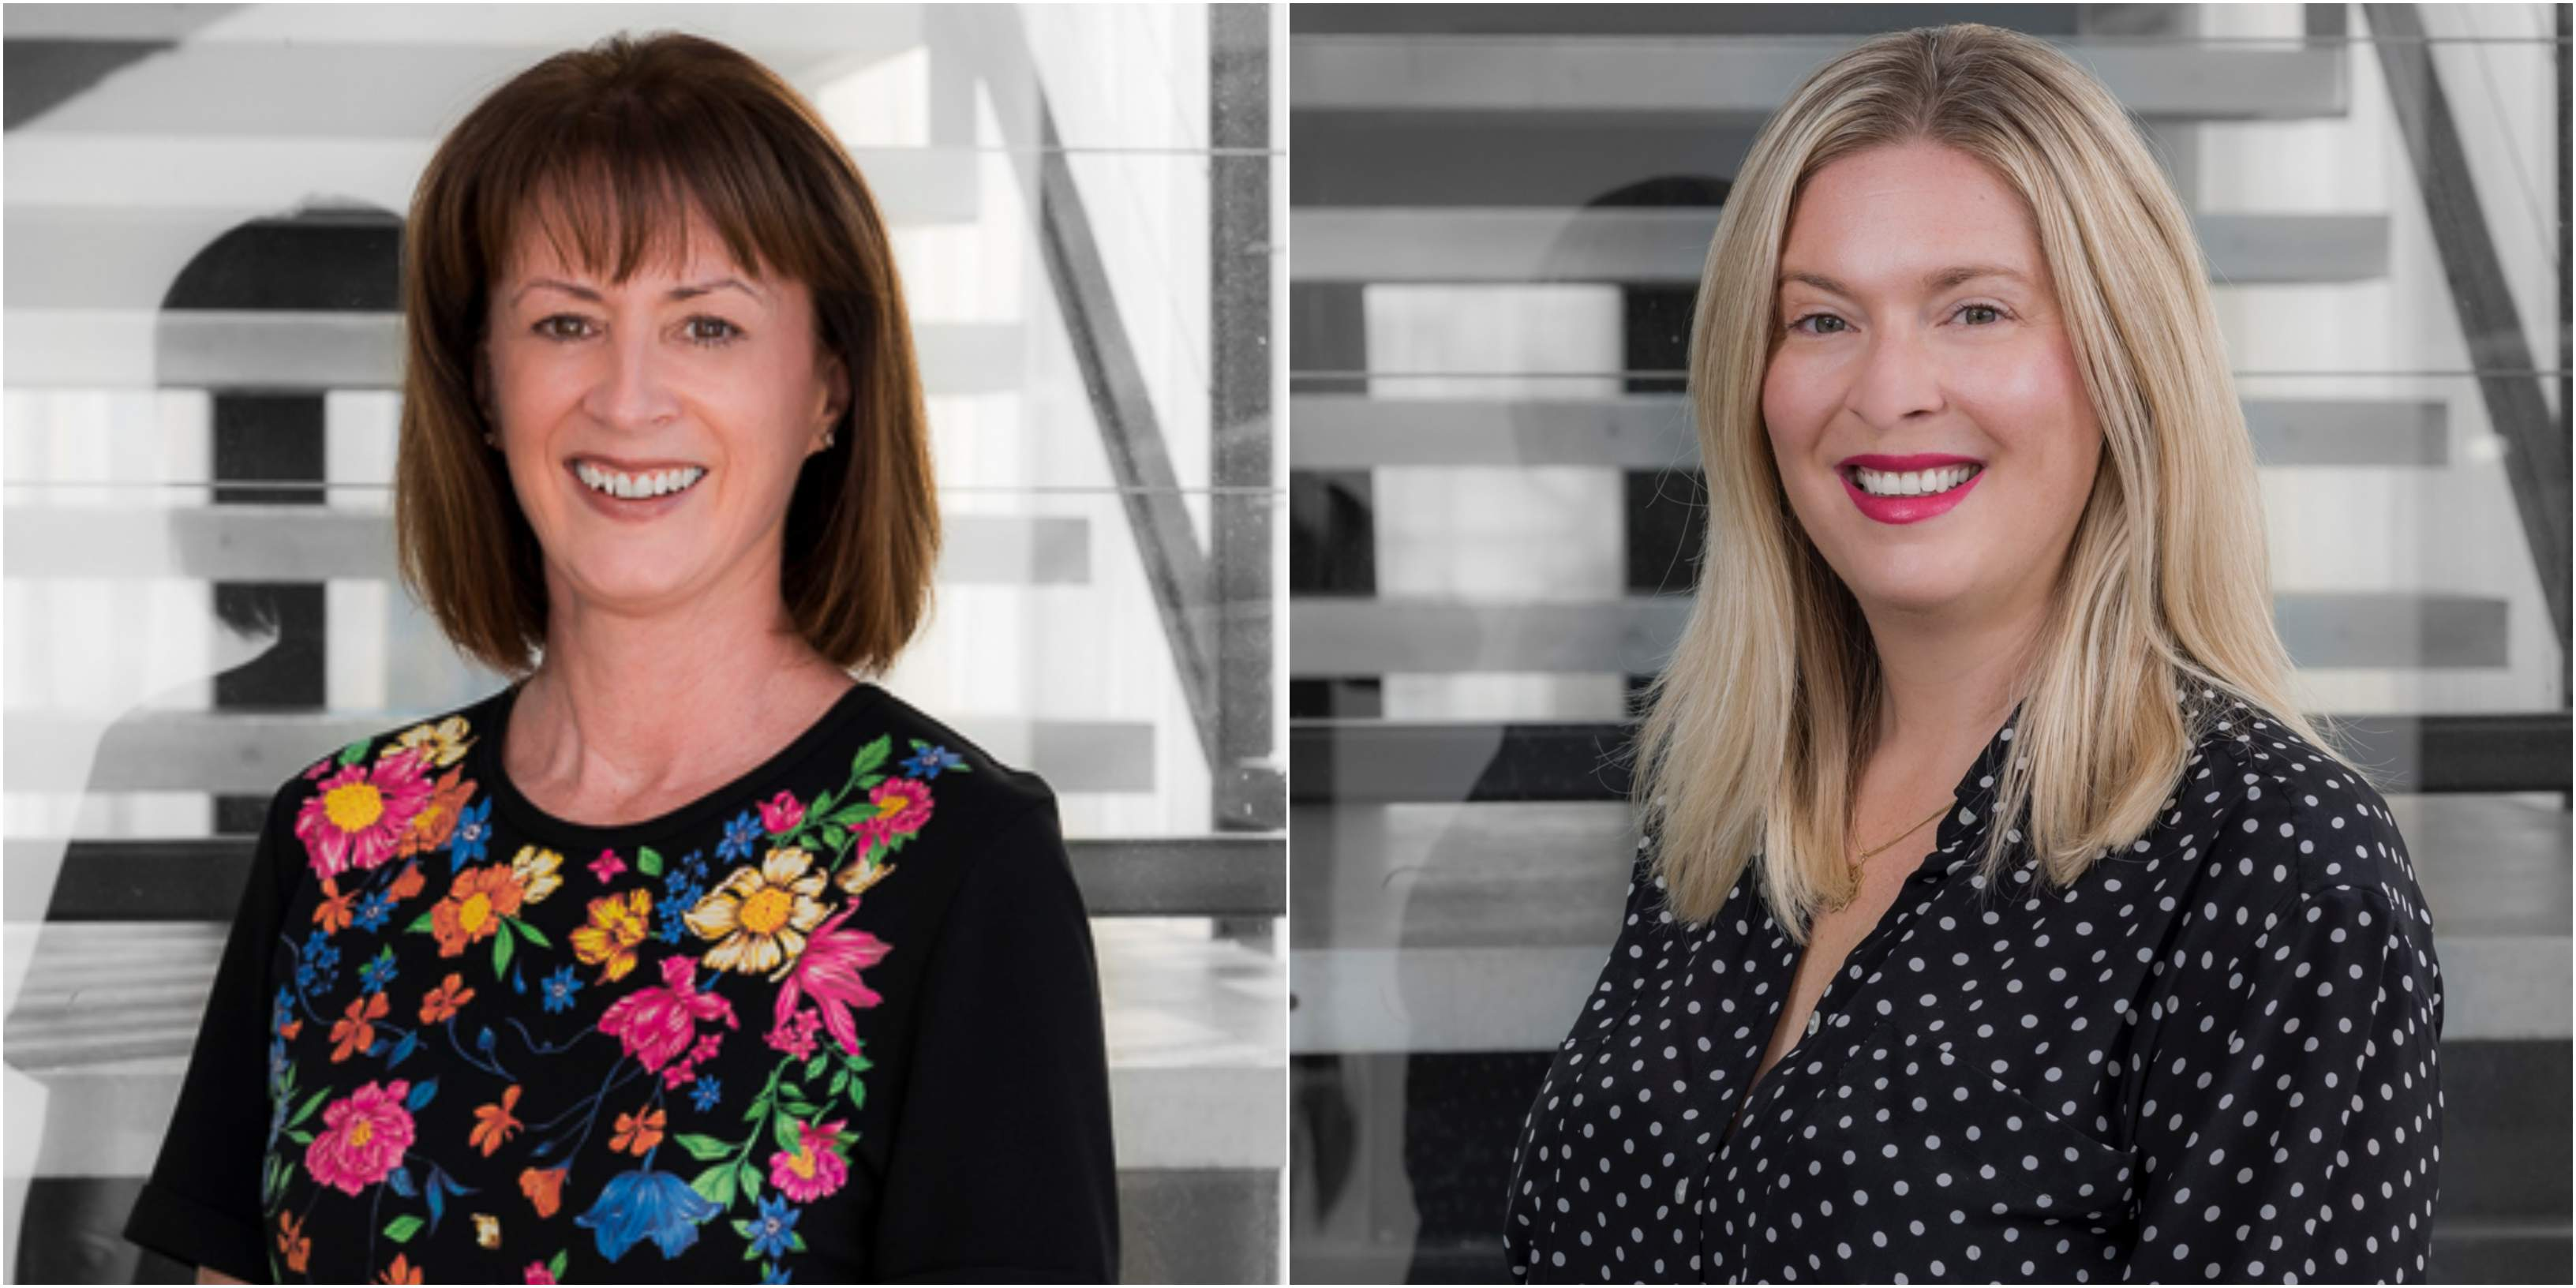 MBM hires Cath Hamilton as investment director; Nicky Greville joins as client service director